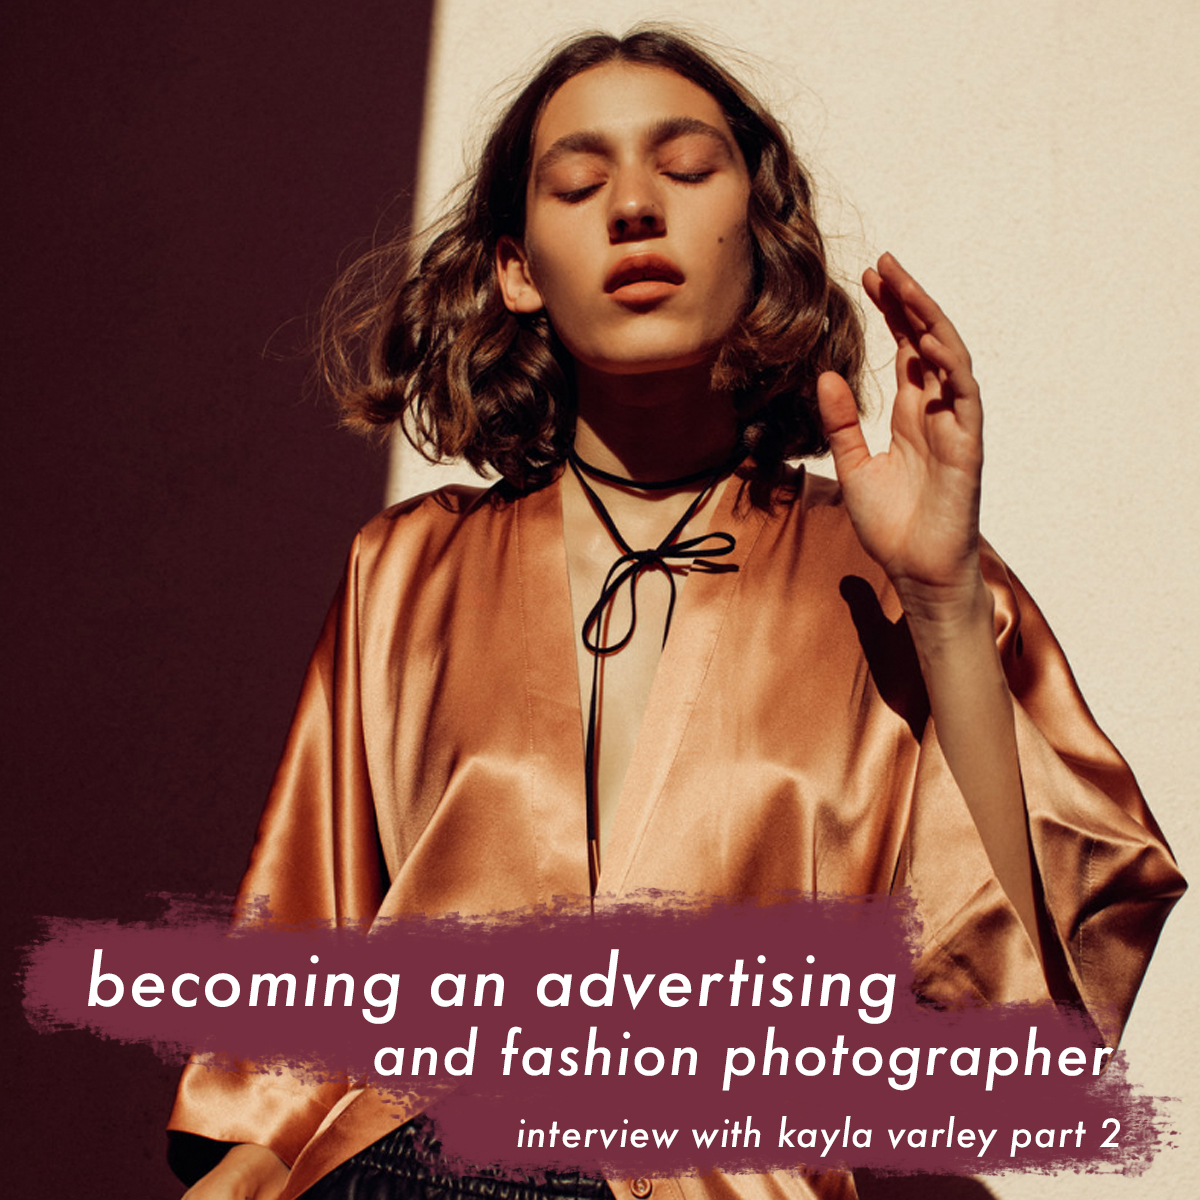 how-to-become-advertising-fashion-photographer-part2.jpg